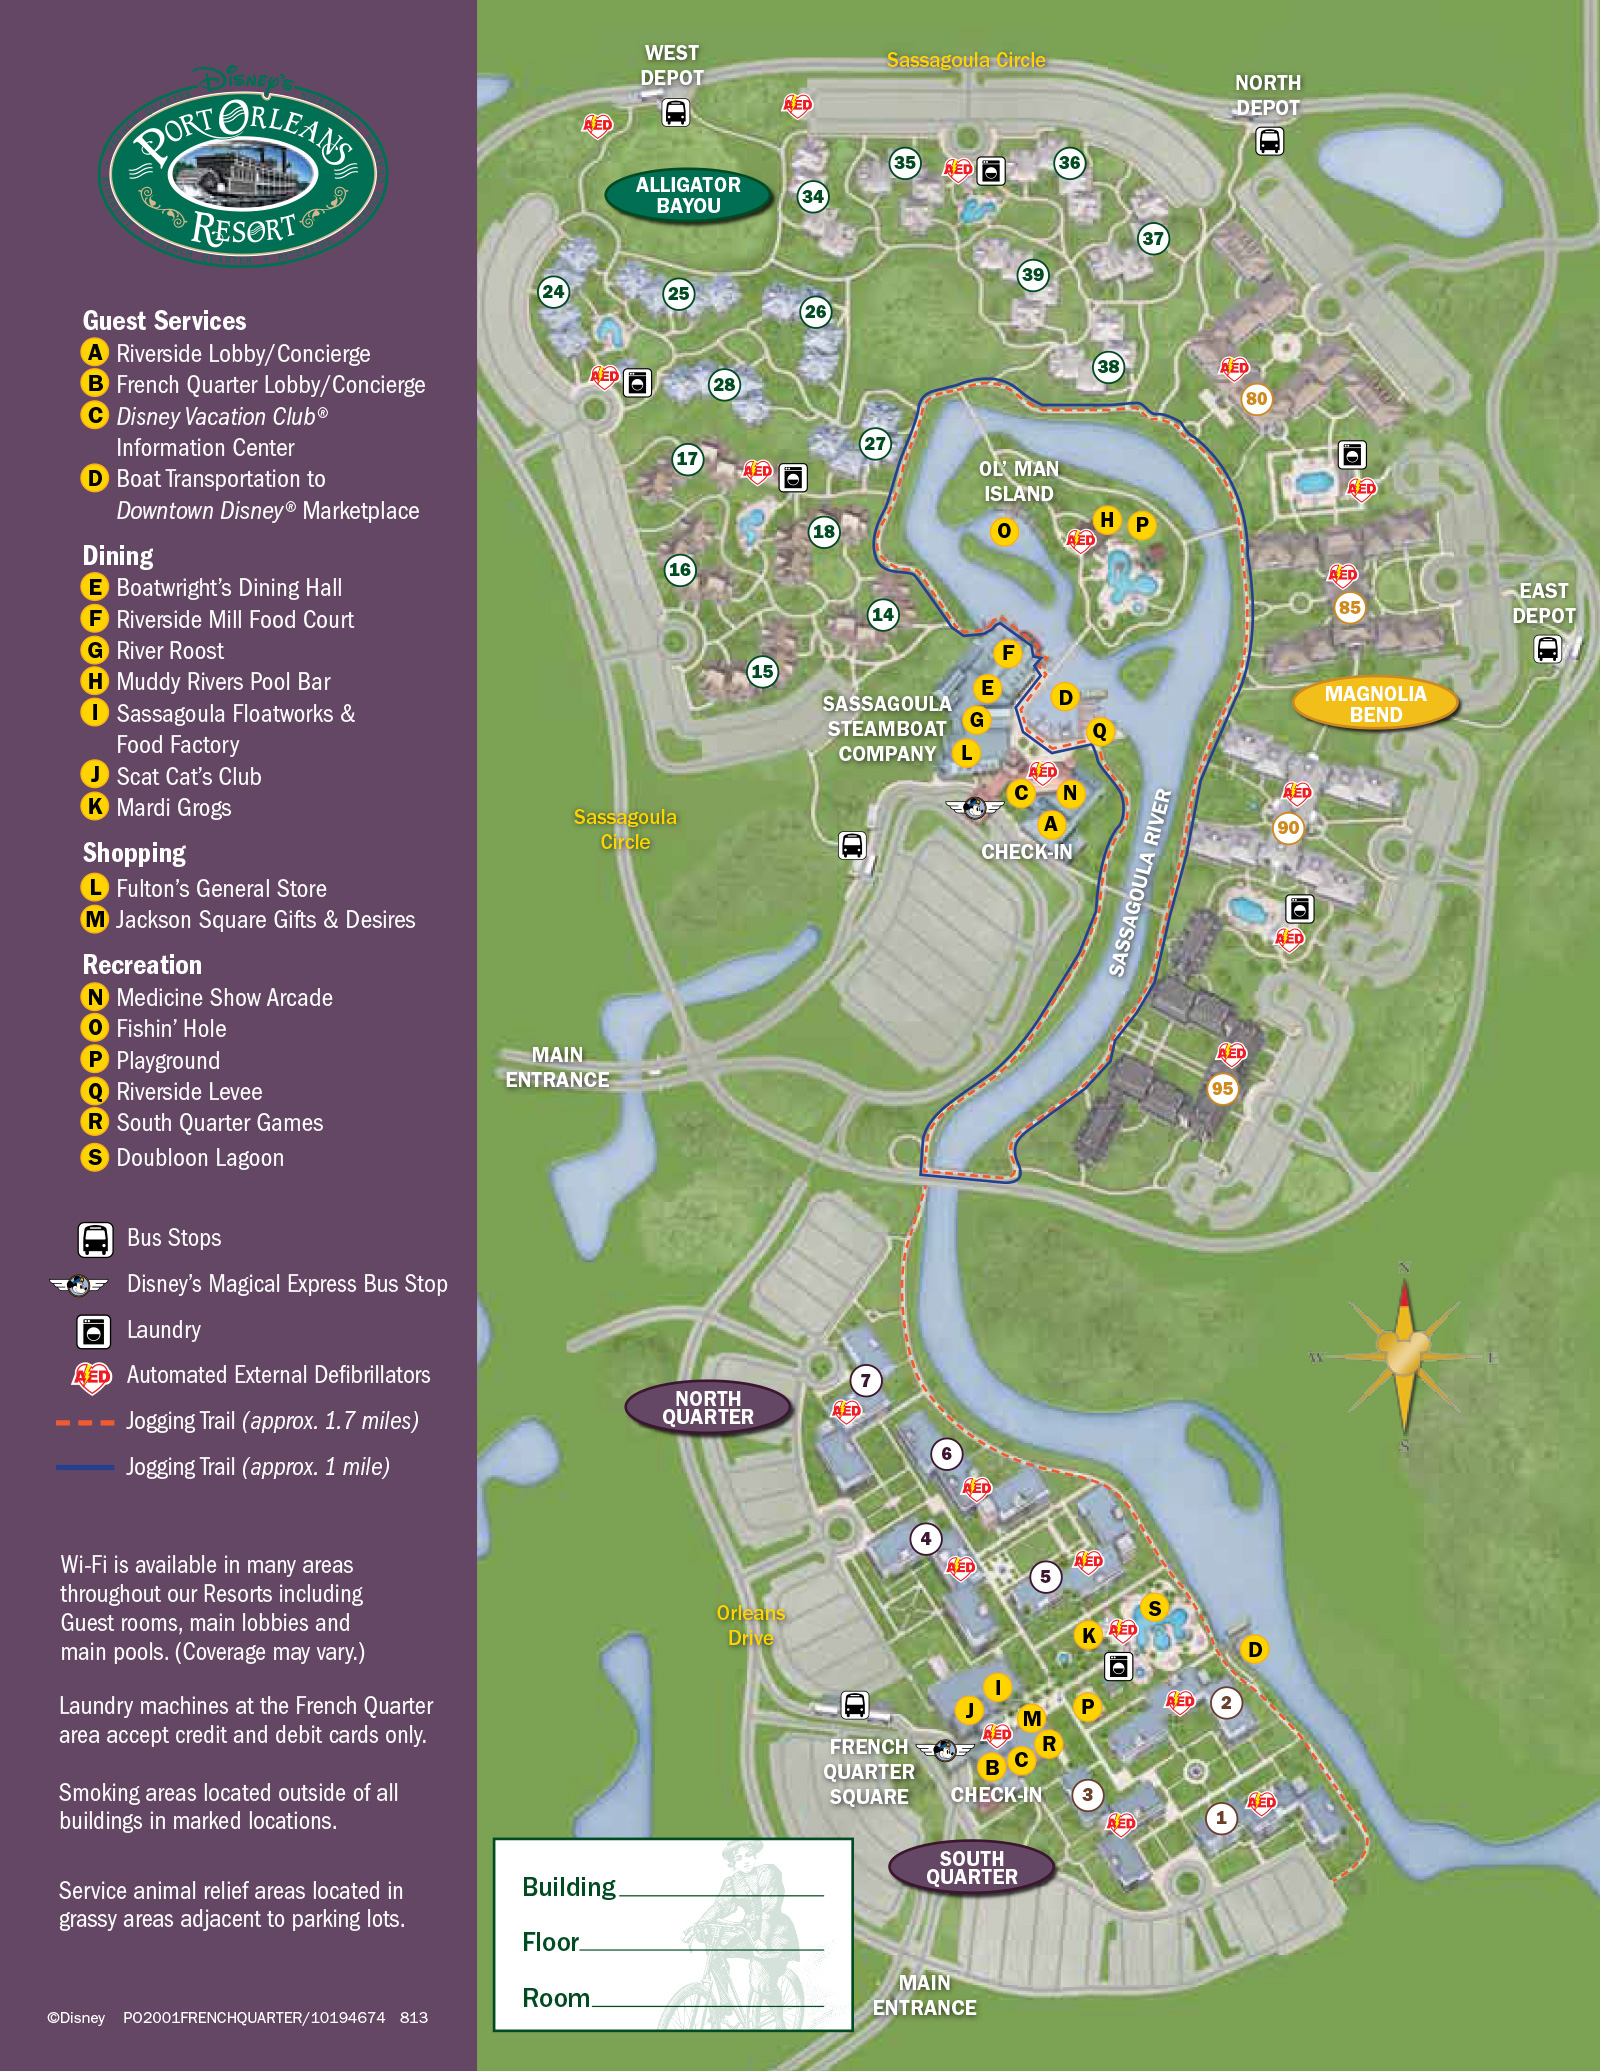 2013 Port Orleans French Quarter guide map Photo 1 of 2